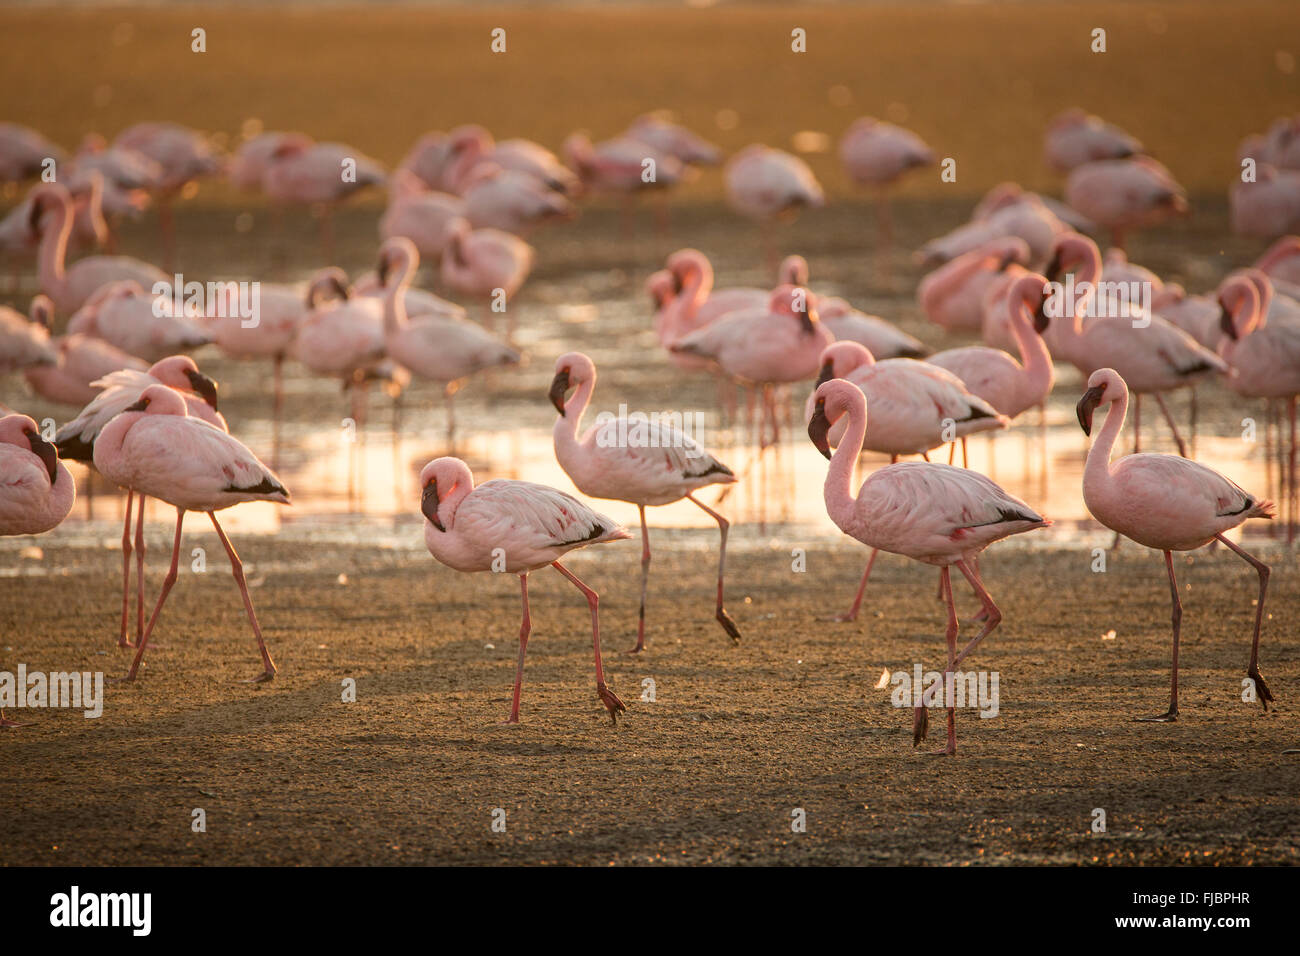 Flamingos at the Walvis Bay wetland - Stock Image